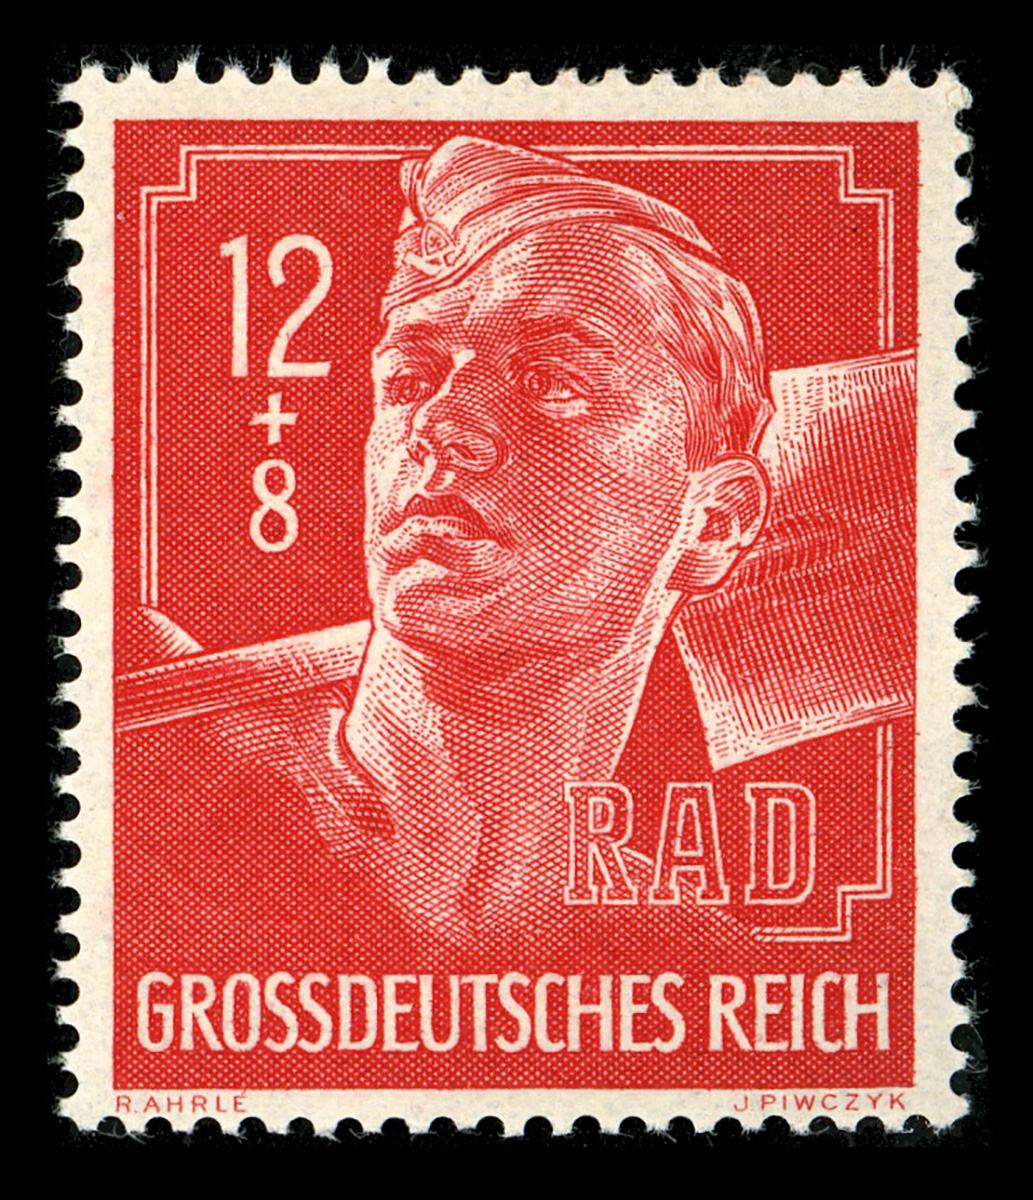 A semipostal from after 1944 commemorating the work of the German labour divisions, face value 12pf, surcharge 8pf